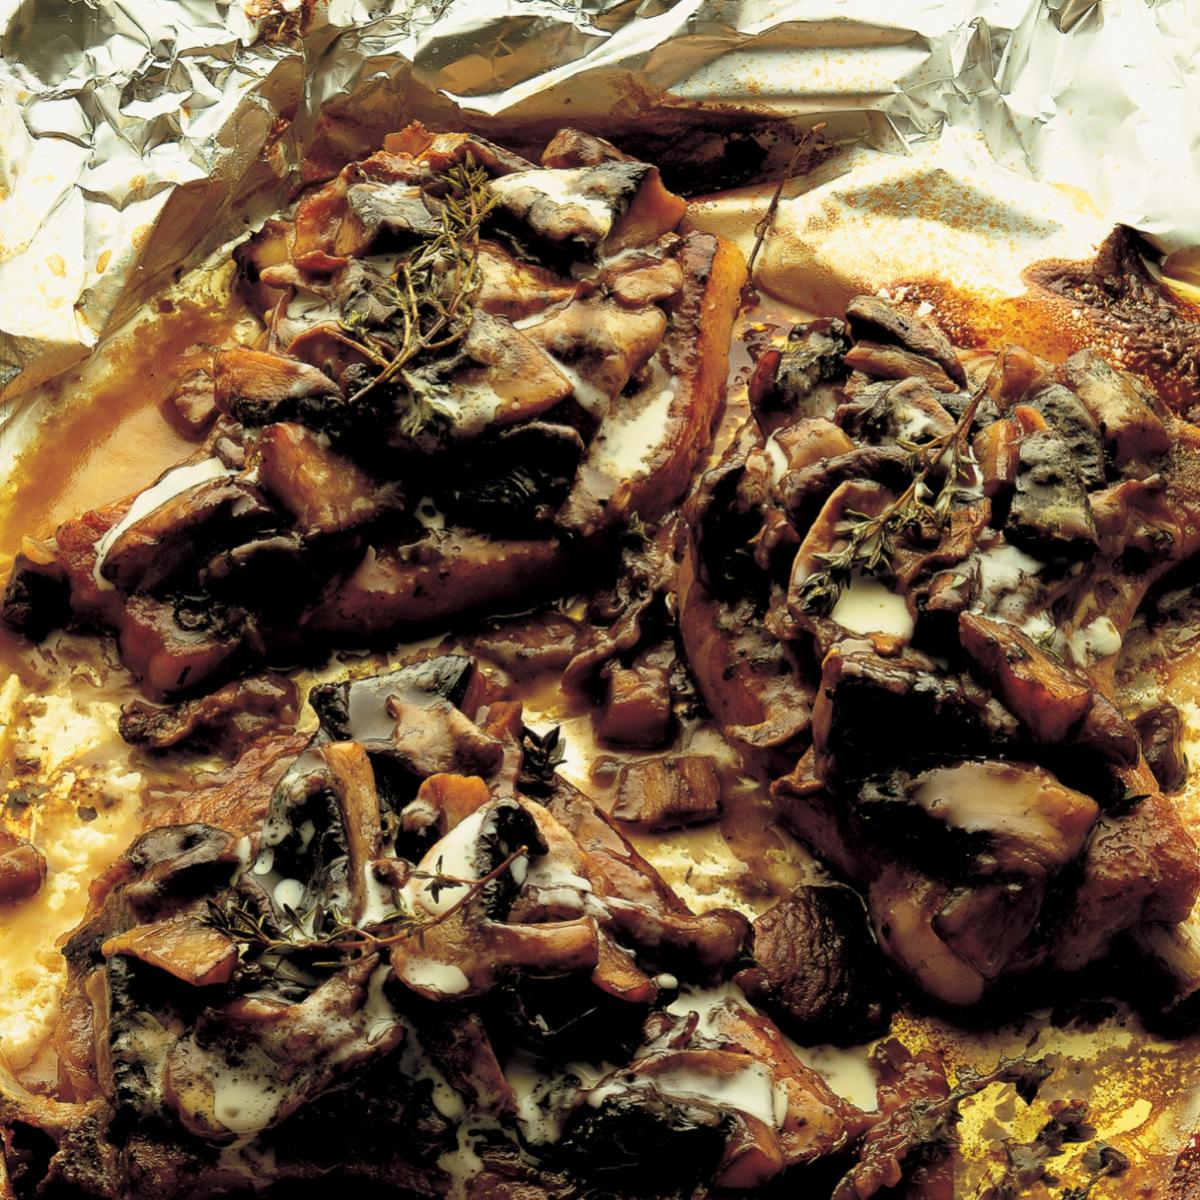 A picture of Delia's Pork Chops Baked with Wild Mushrooms and Creme Fraiche recipe